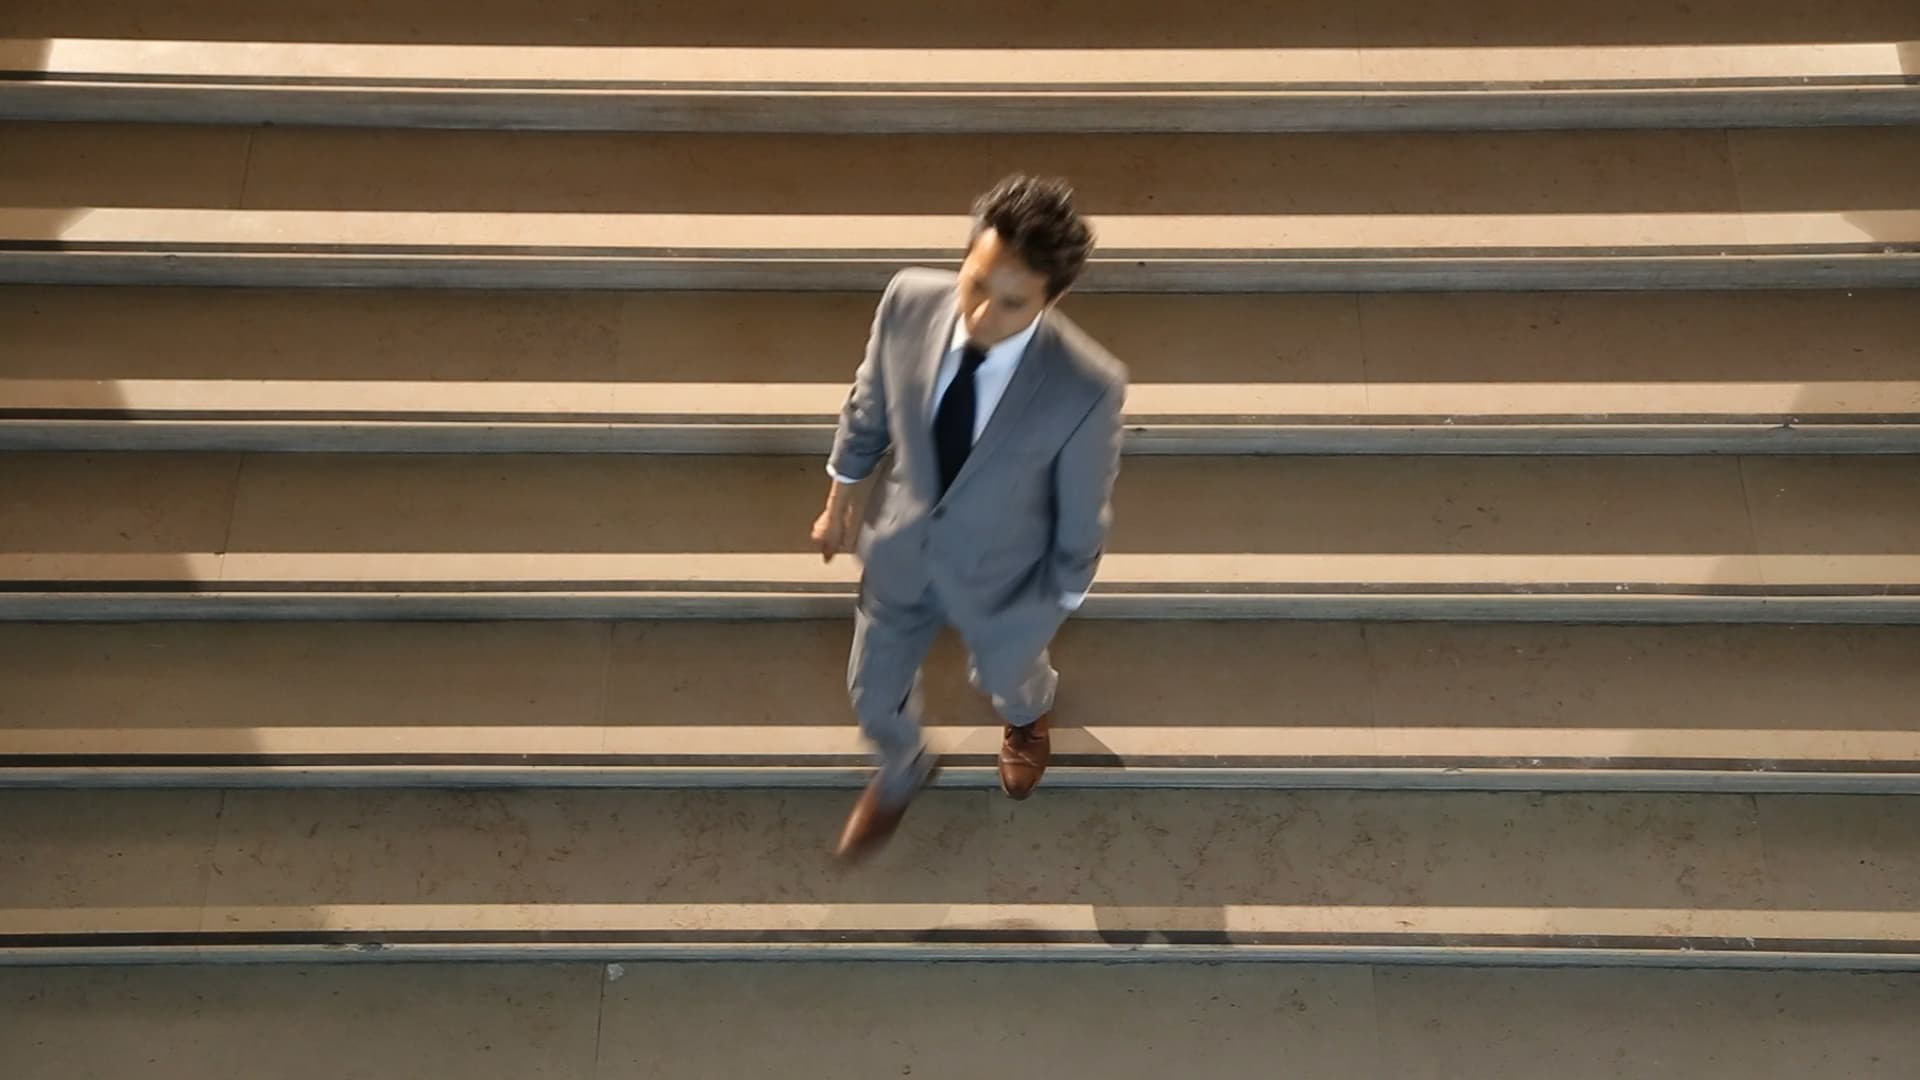 Still from the film Network/Intersect, by Ollie Palmer. The image depicts a businessman in a suit descending a flight of stairs.